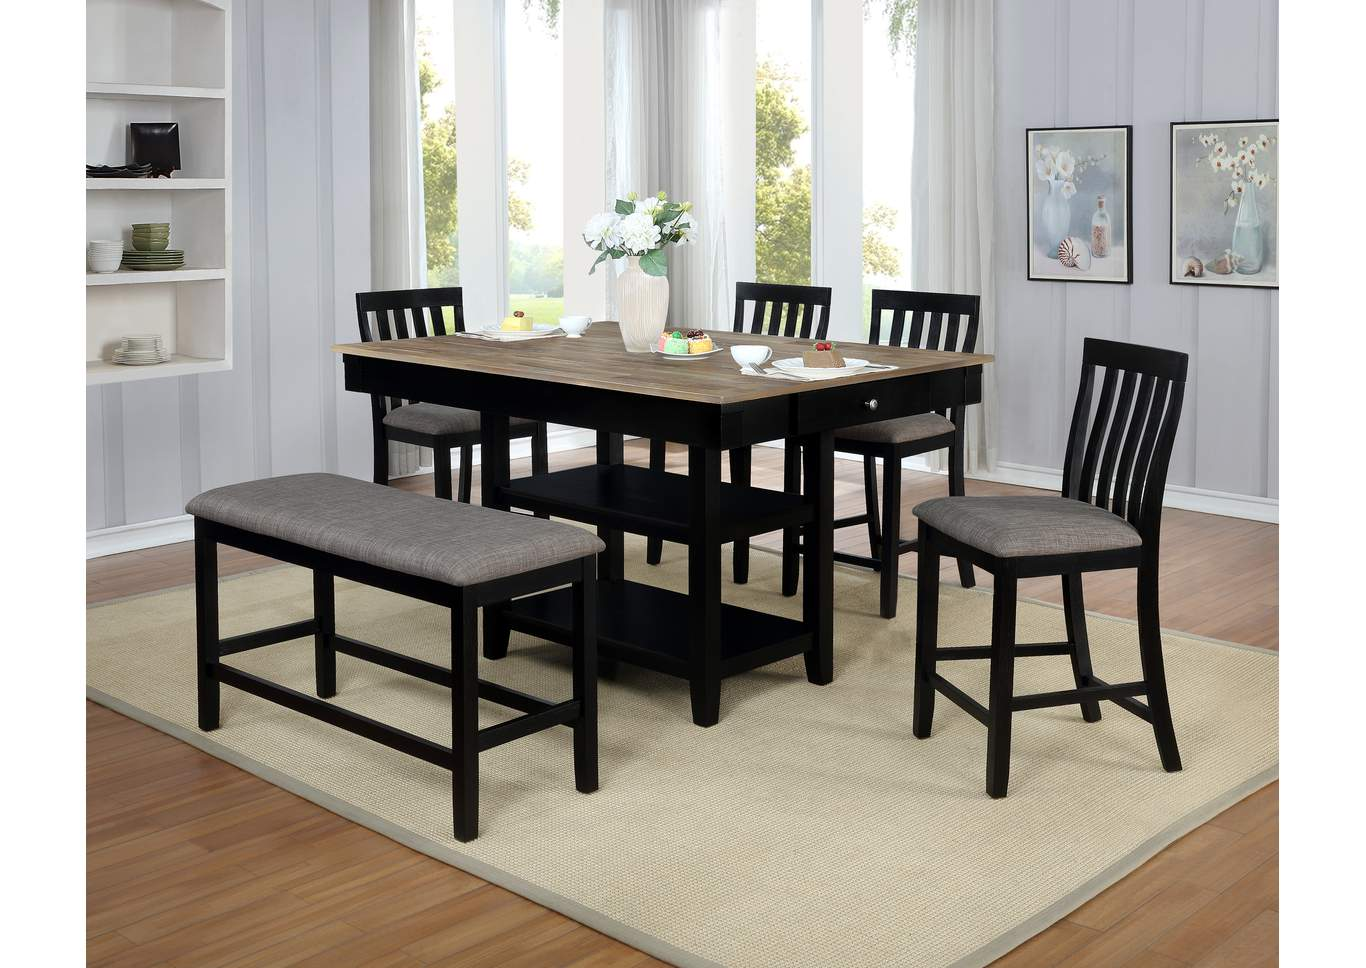 Admirable Ivan Smith Nina Black Dining Table W 4 Side Chairs And A Bench Ibusinesslaw Wood Chair Design Ideas Ibusinesslaworg